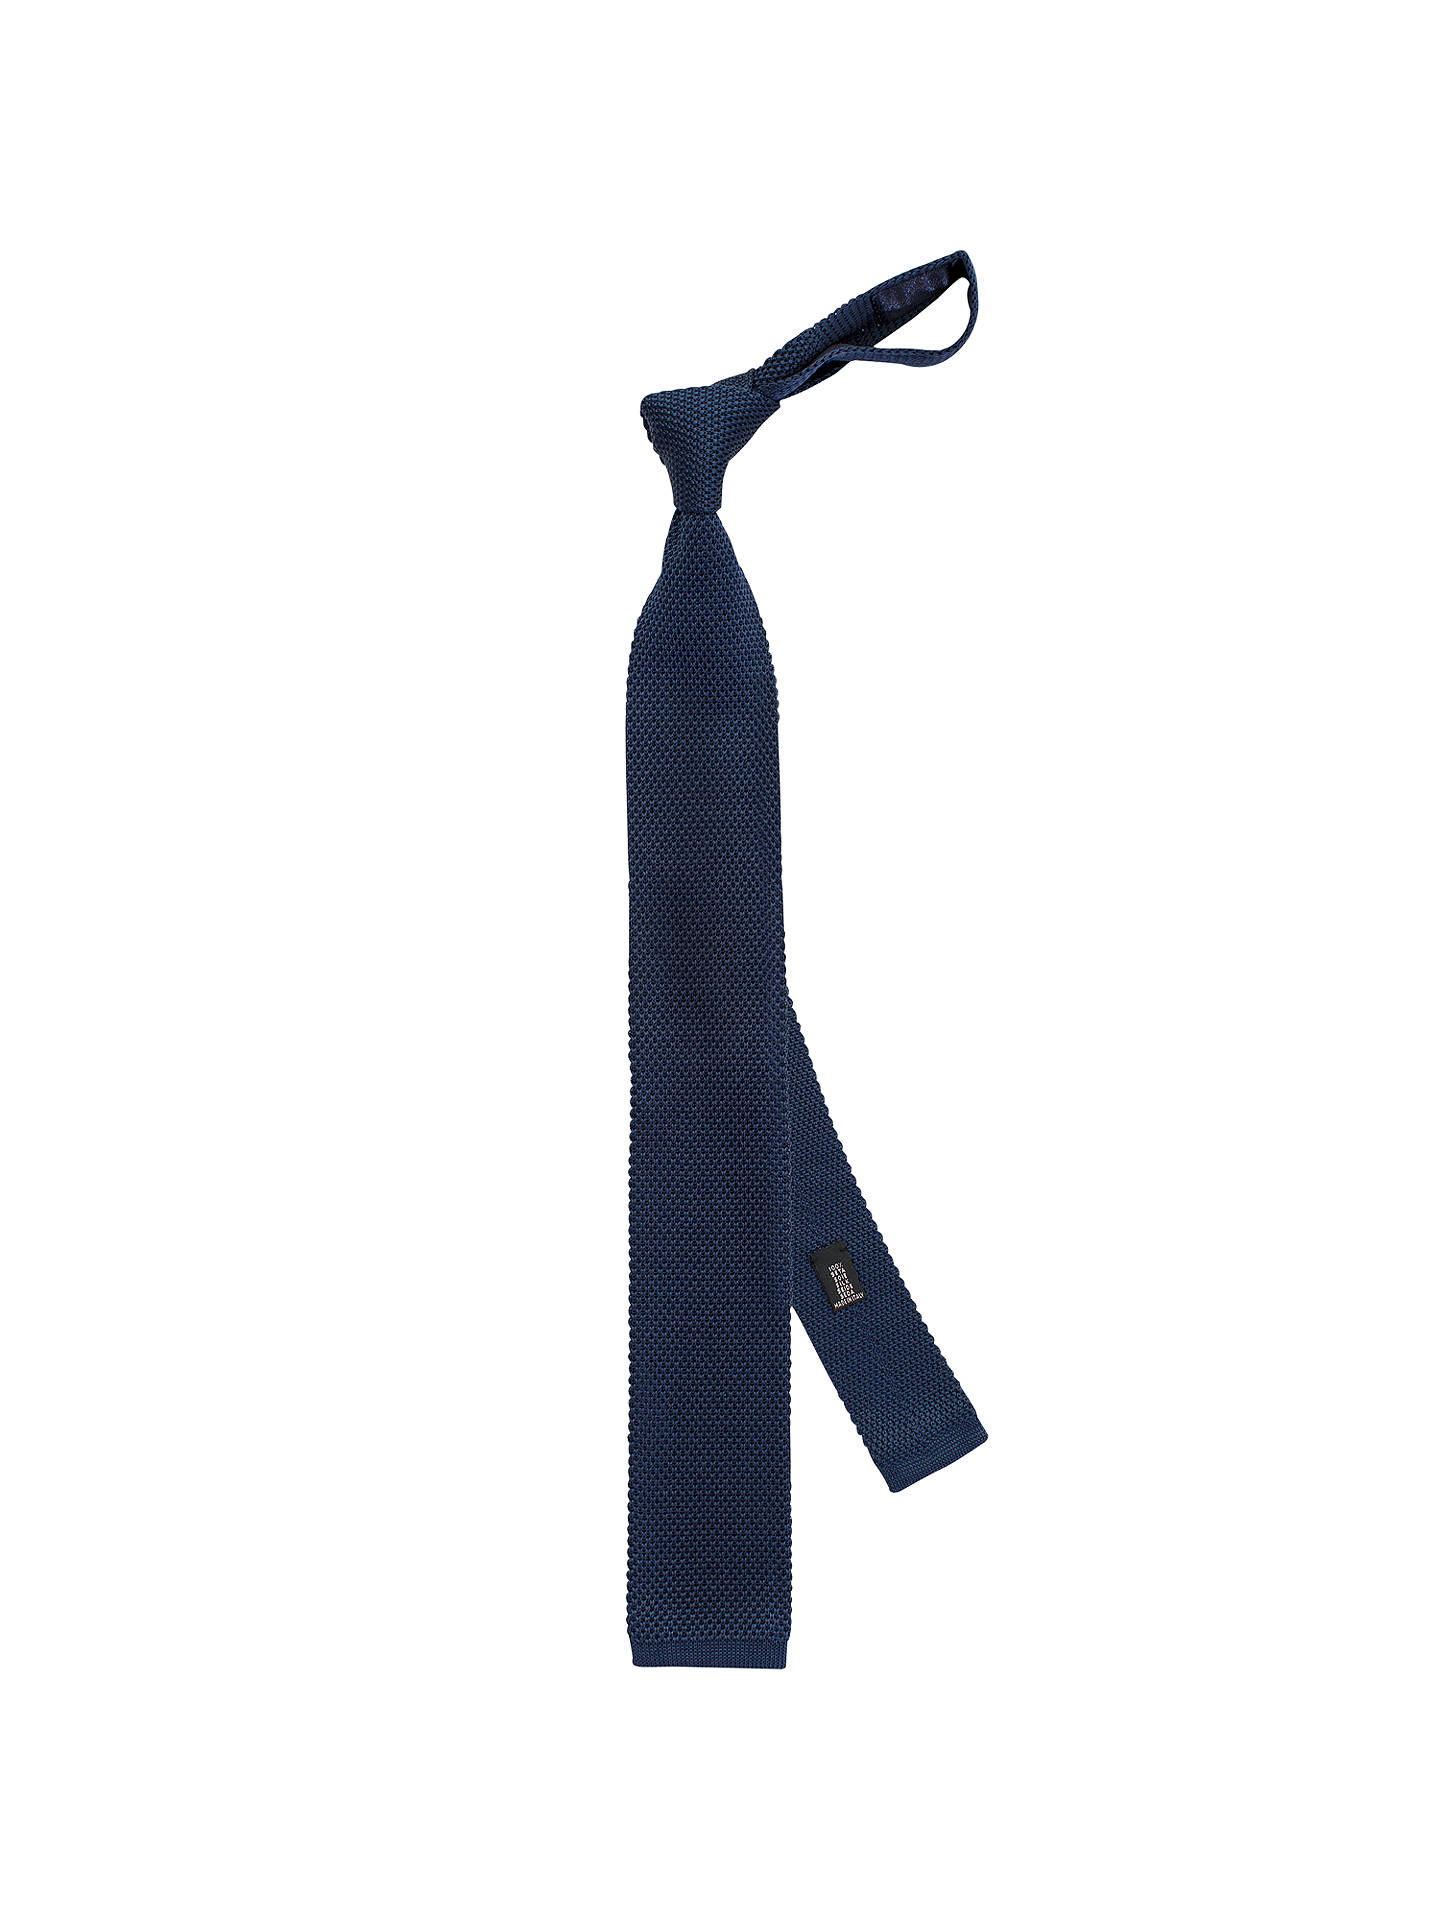 6a51e9edefe5 Buy Thomas Pink Dilham Plain Knitted Tie, Navy Online at johnlewis.com ...